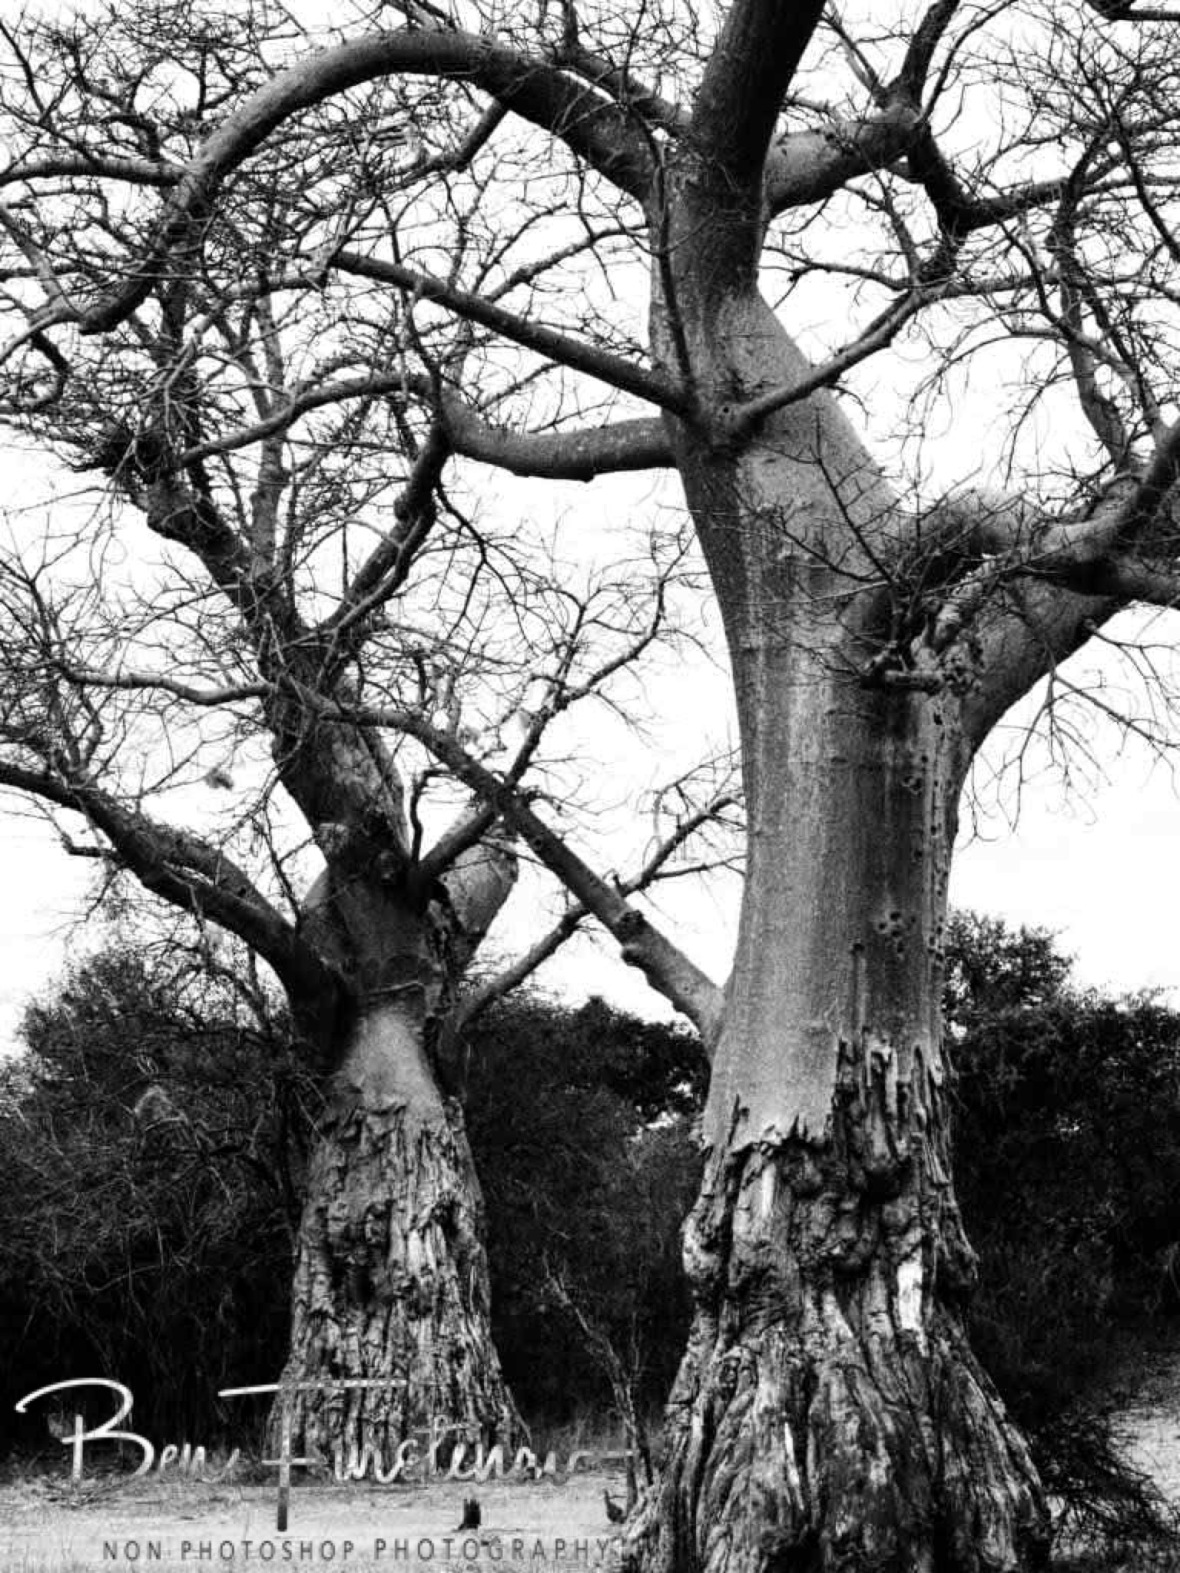 Scratched up Baobab twins, South Luangwa National Park, Zambia